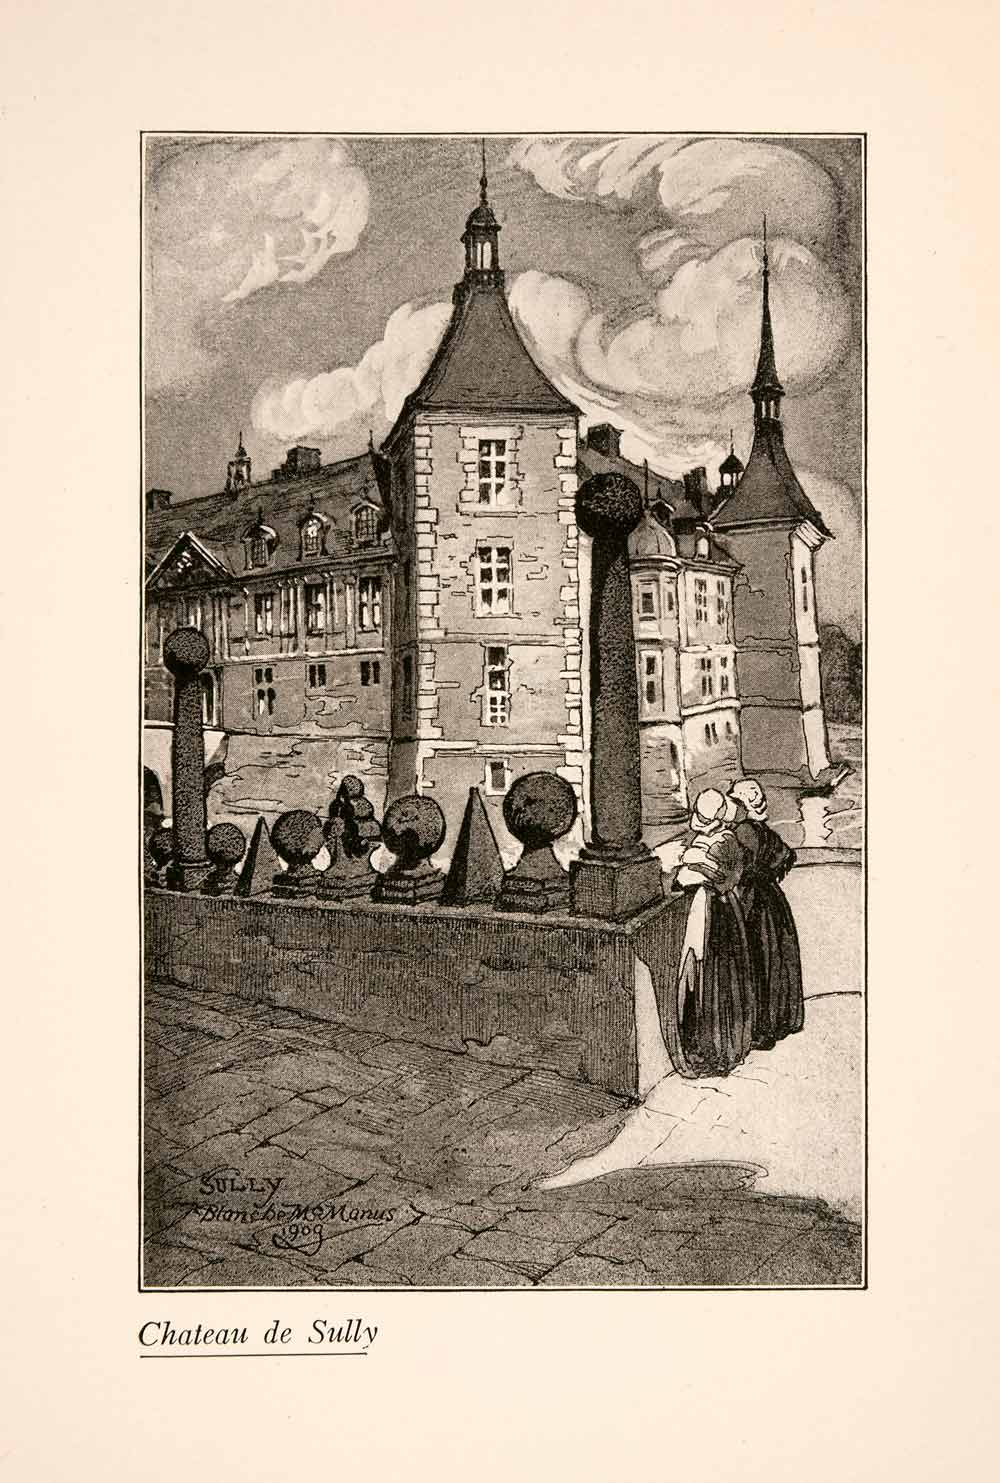 1929 Print Blanche McManus Chateau Sully France Architecture Historic XGLA1